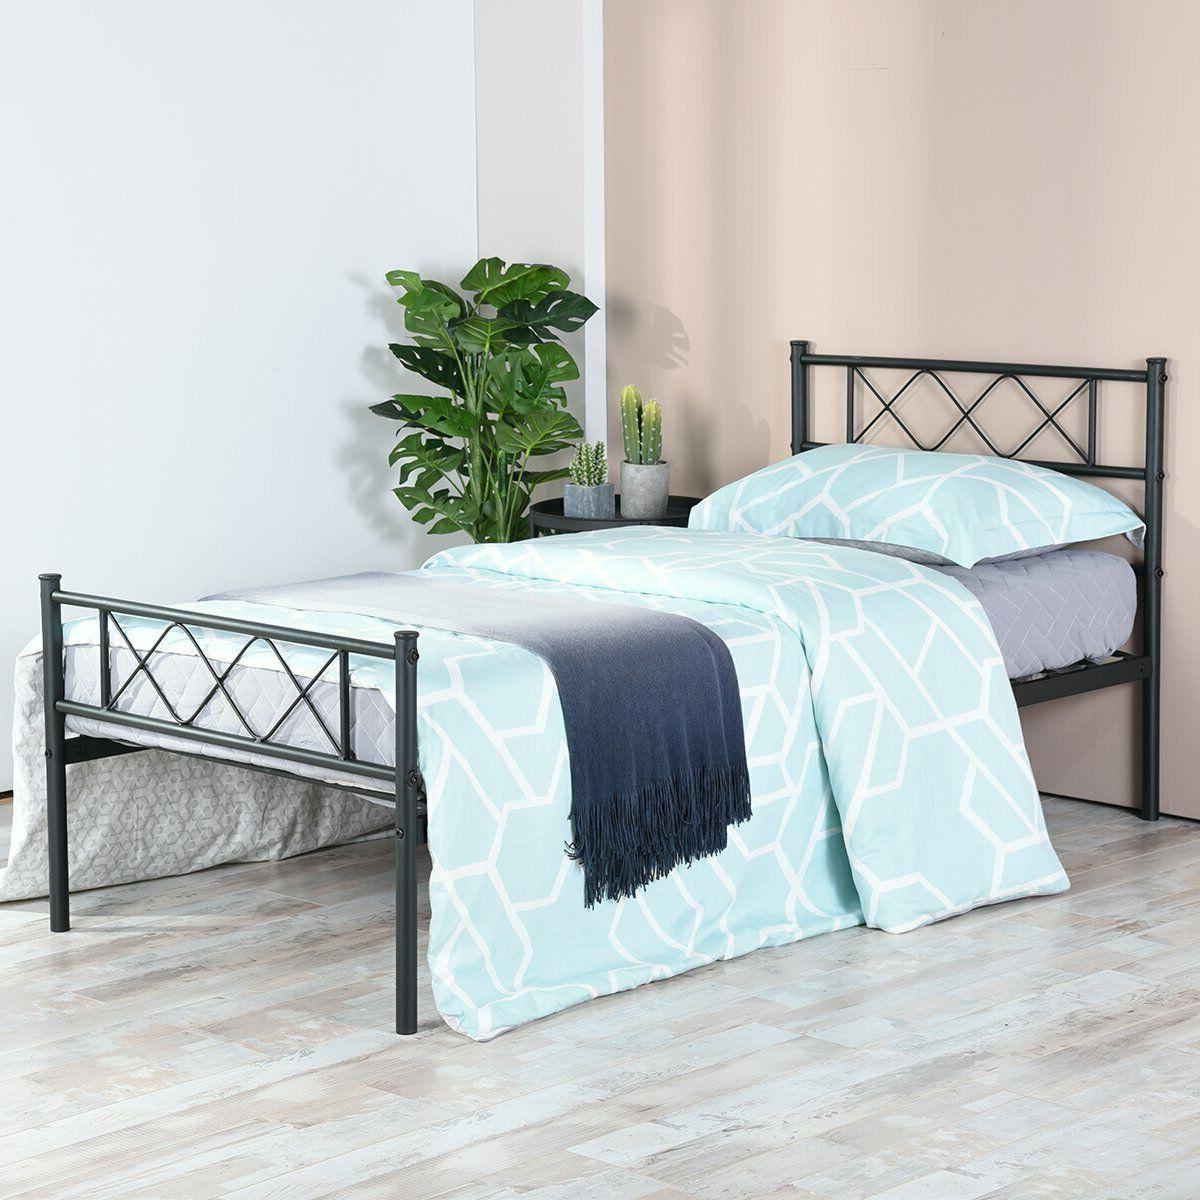 twin size metal bed frame mattress foundation